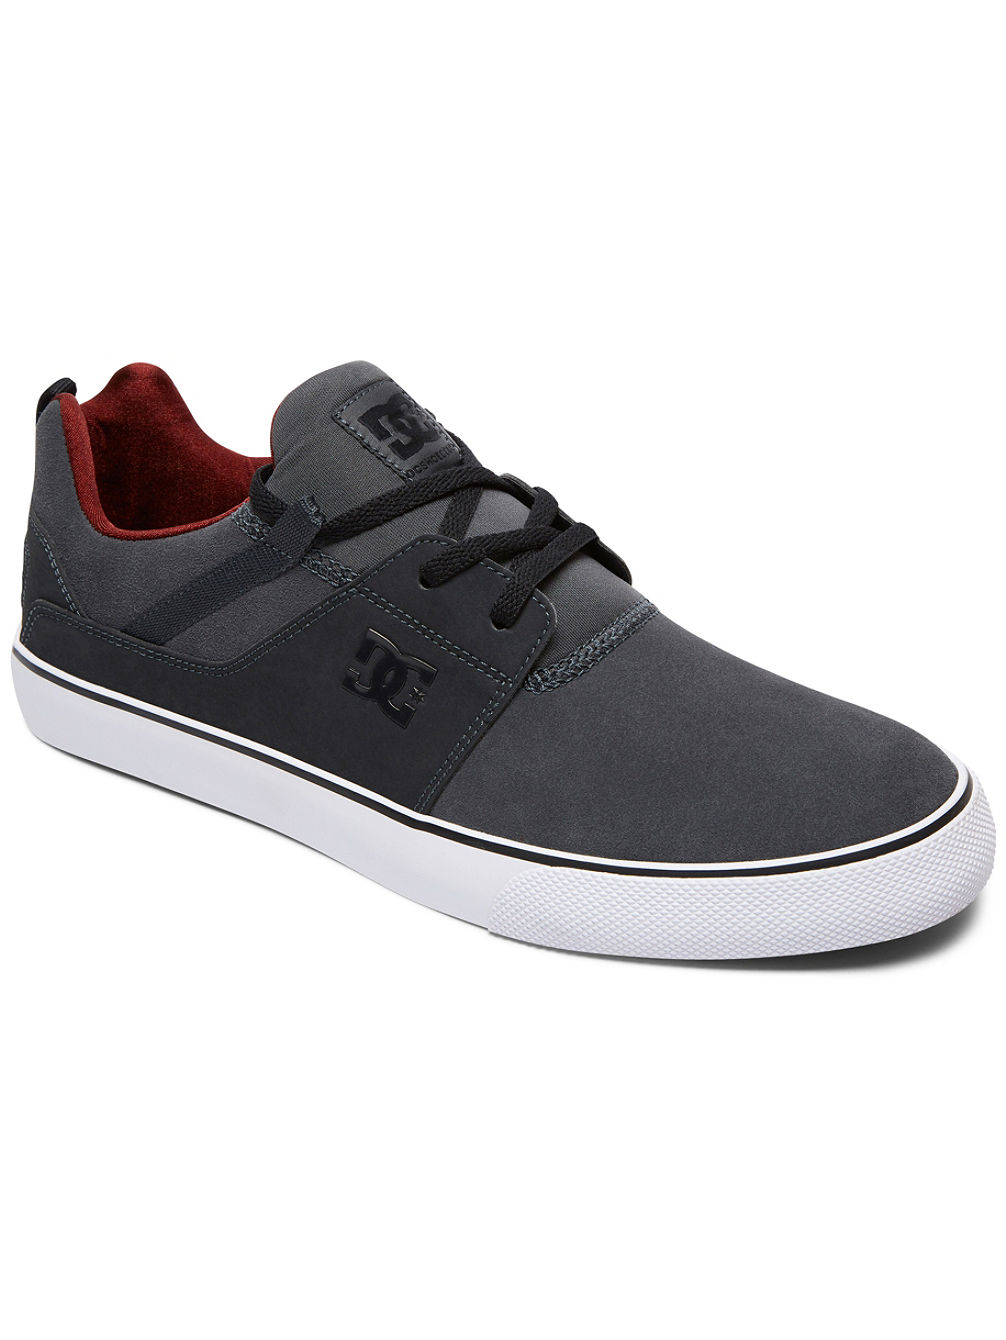 Heathrow Vulc SE Sneakers